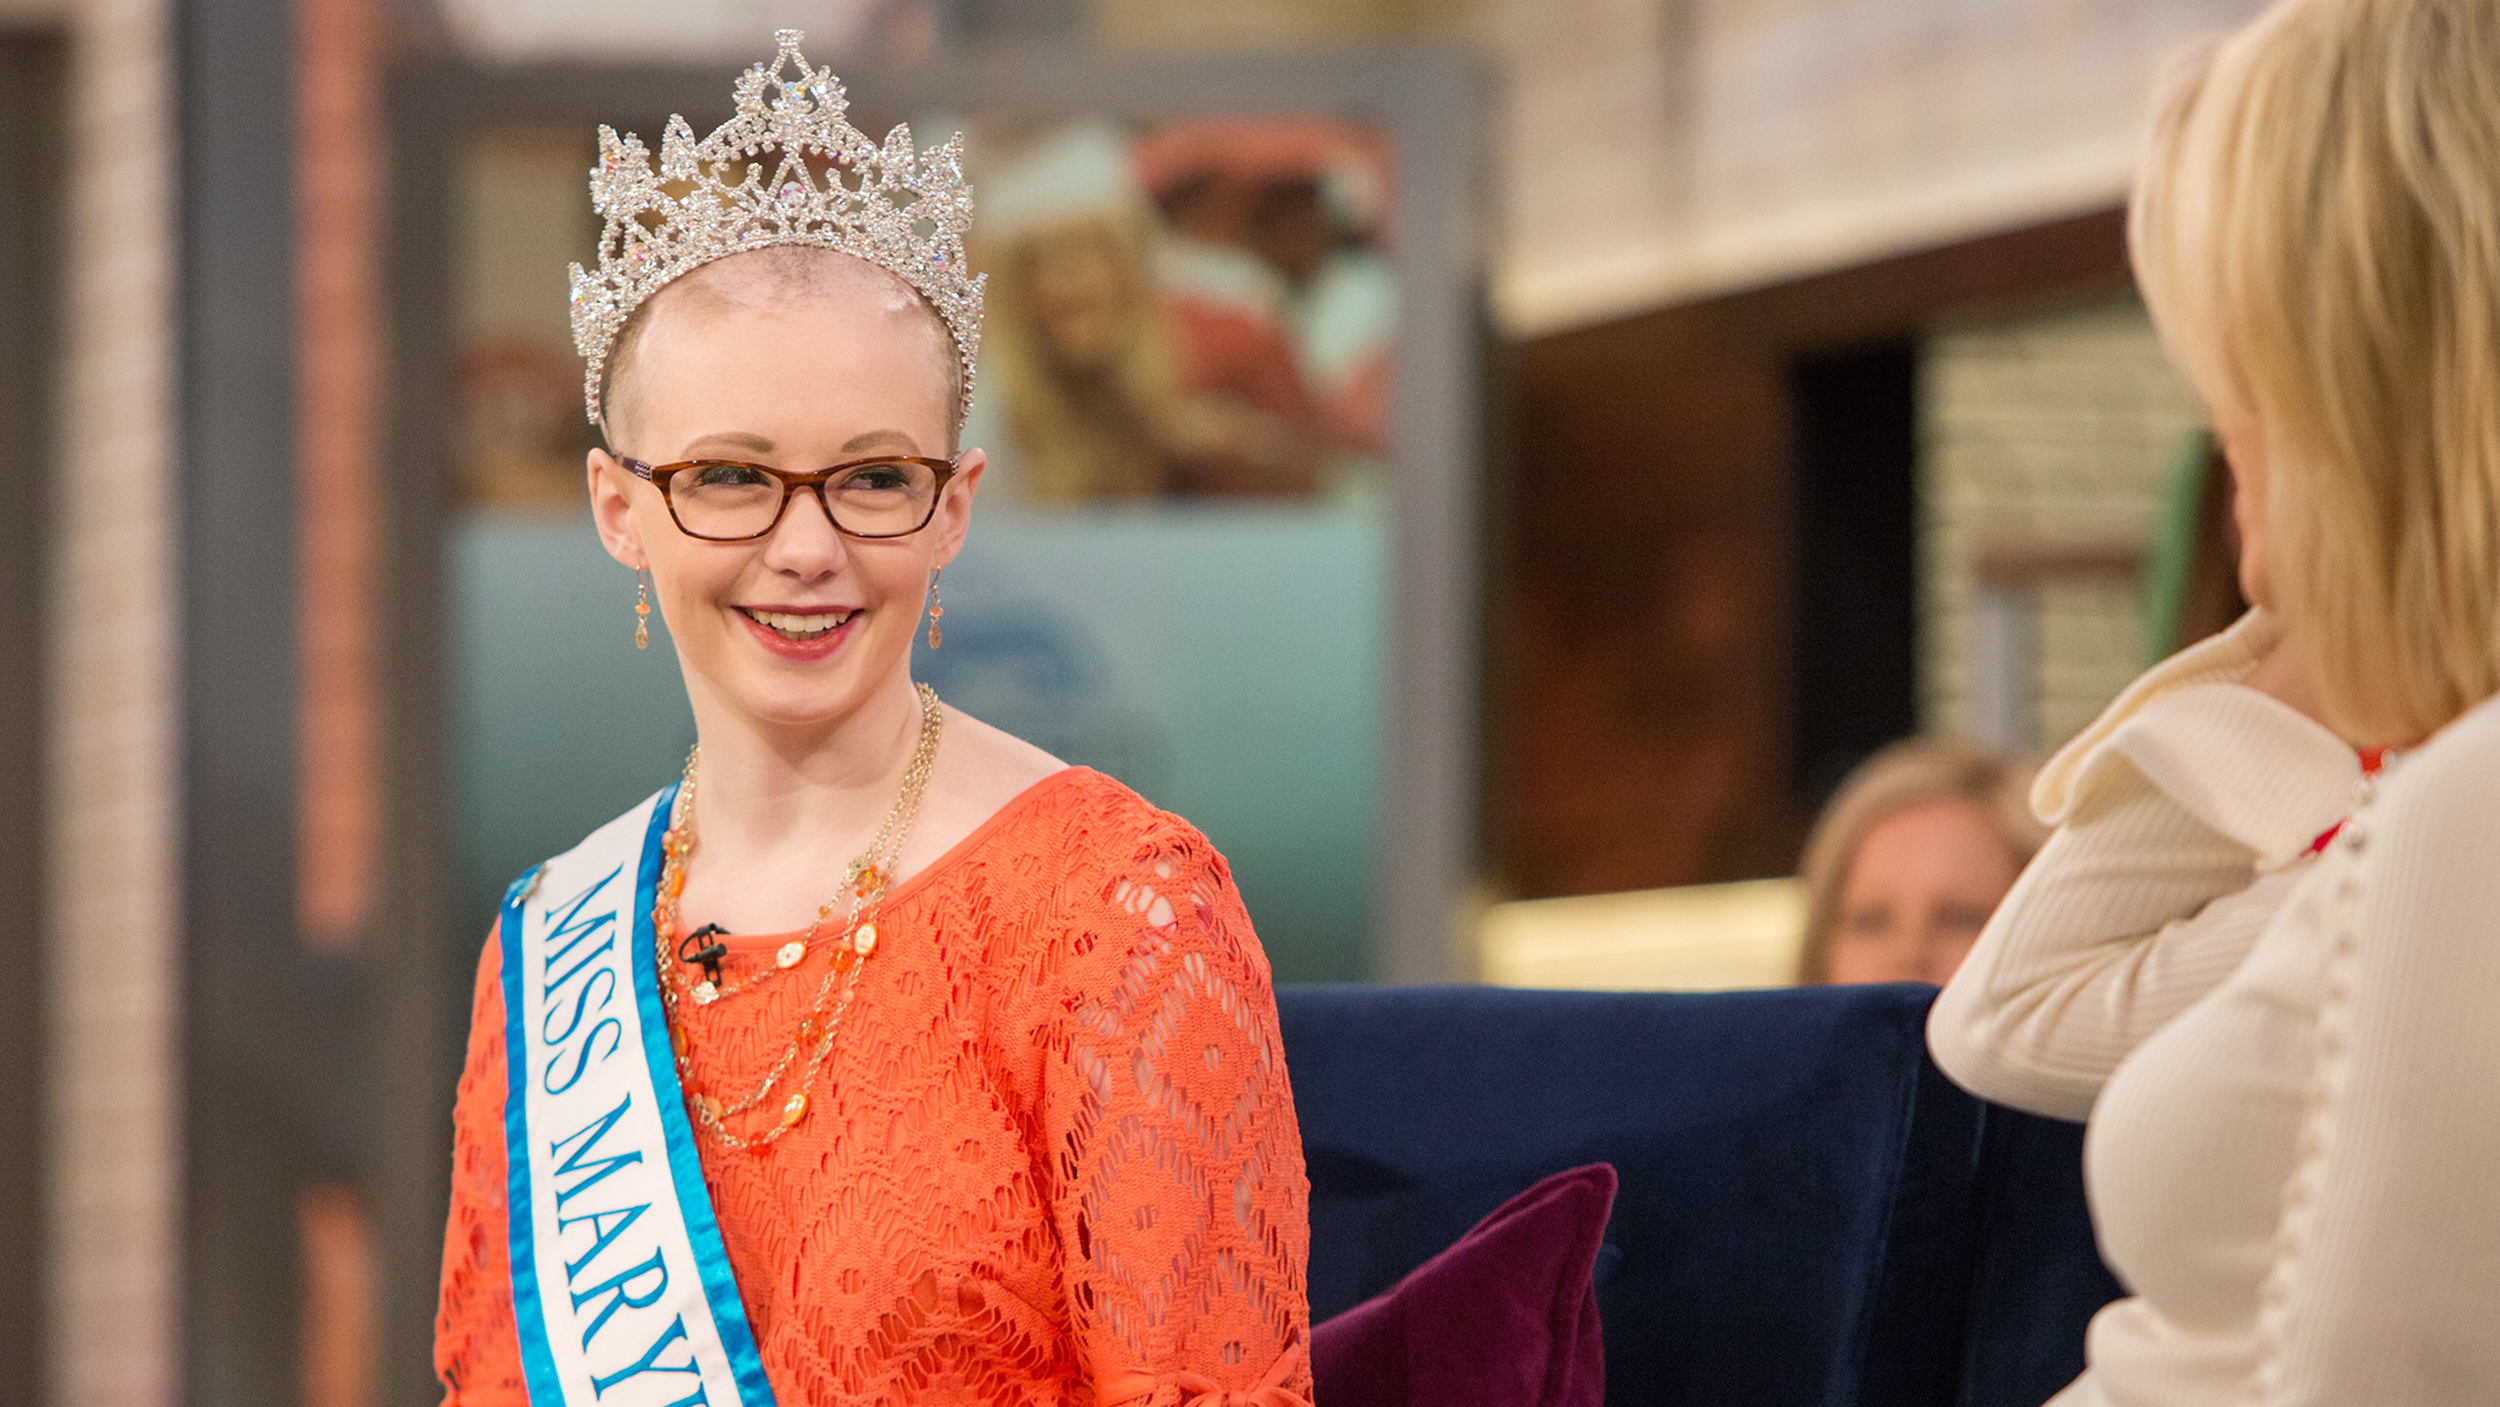 Bald Teen With Hair Pulling Disorder Wins Beauty Pageant And